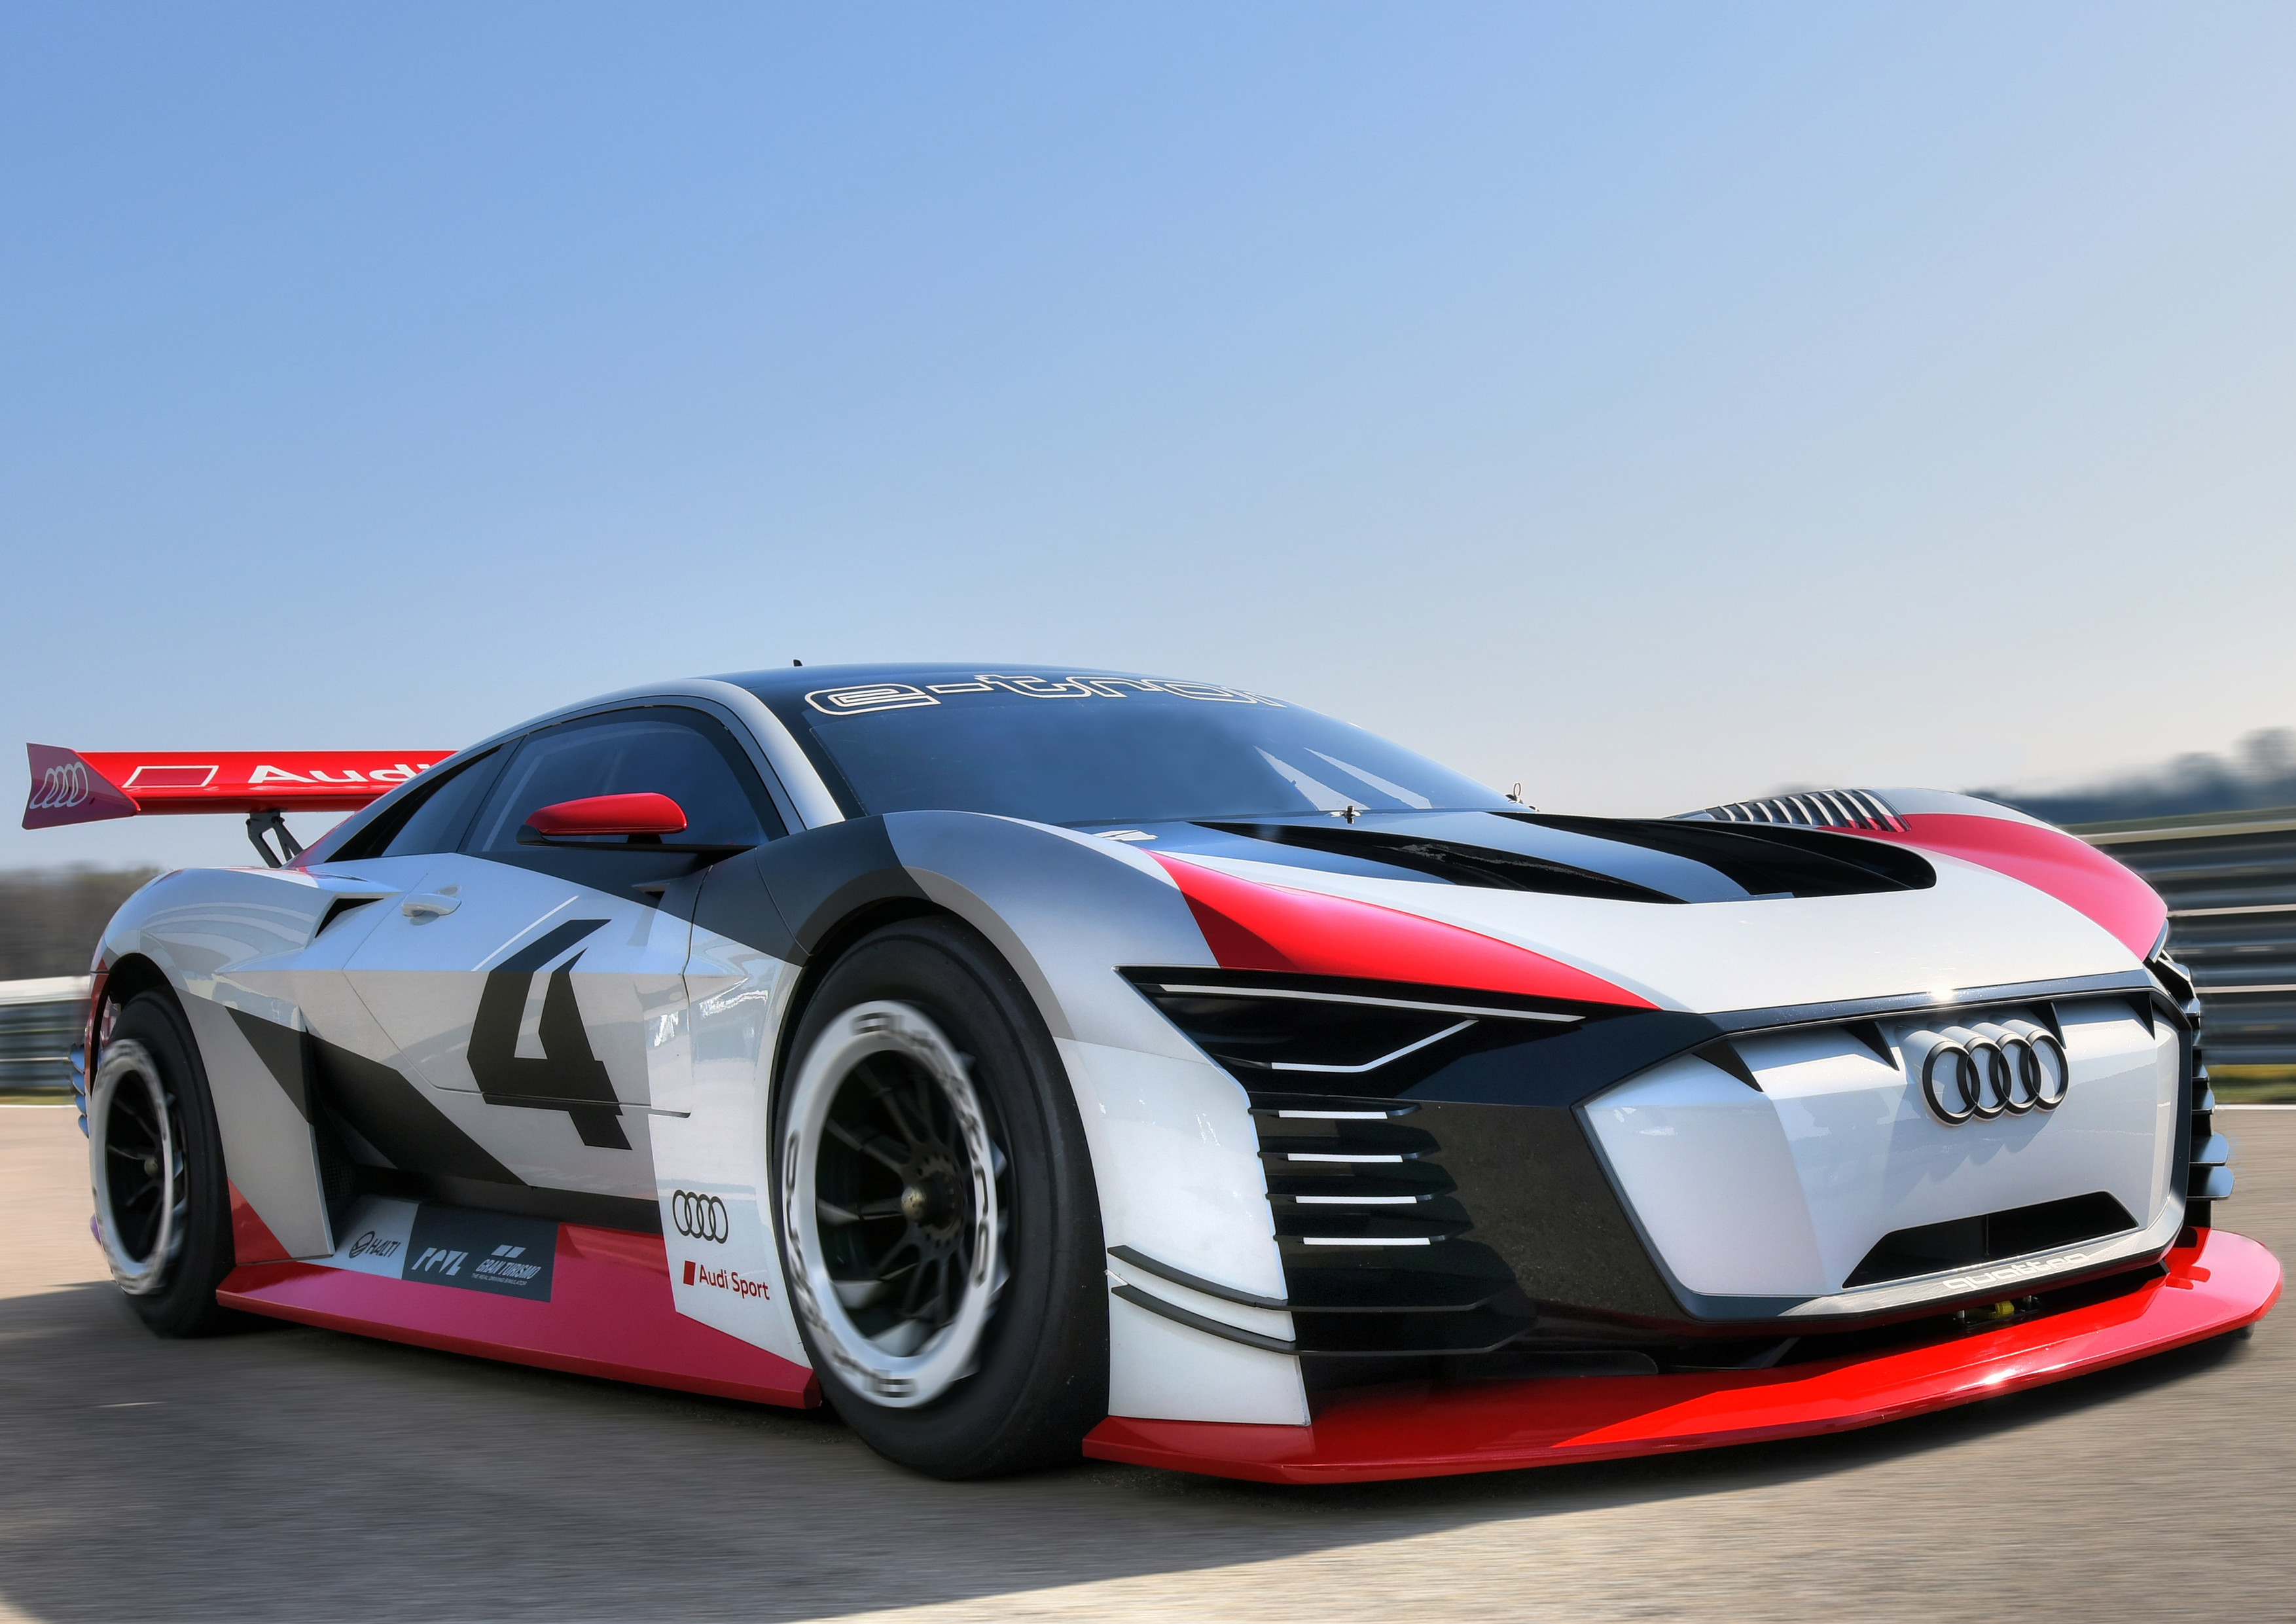 Audi S 815 Horsepower Electric Concept Is A Video Game Car Come To